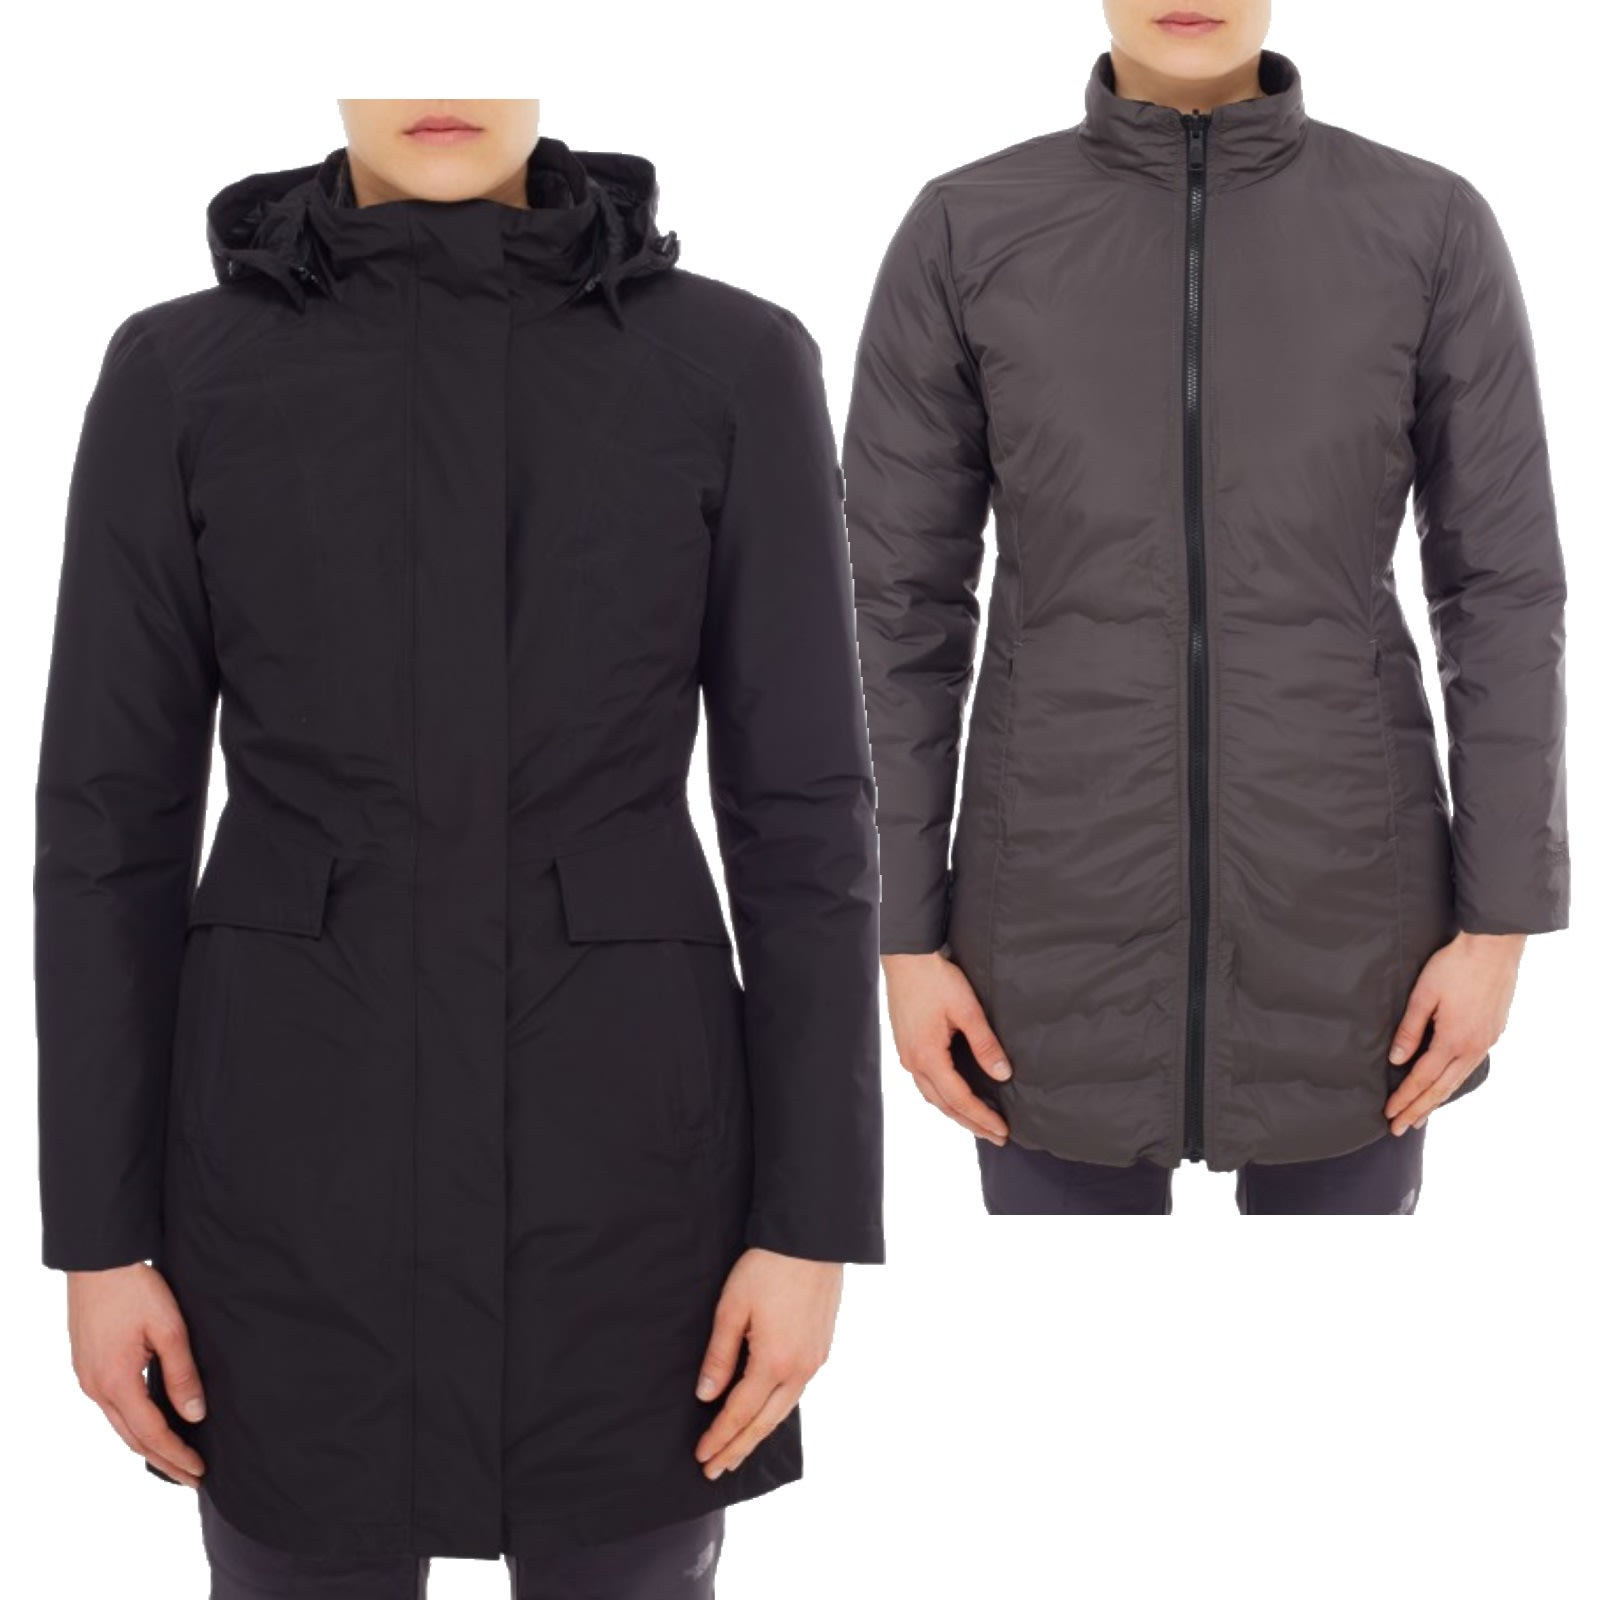 86095af9 Kjøp The North Face W Suzanne Triclimate fra Outnorth